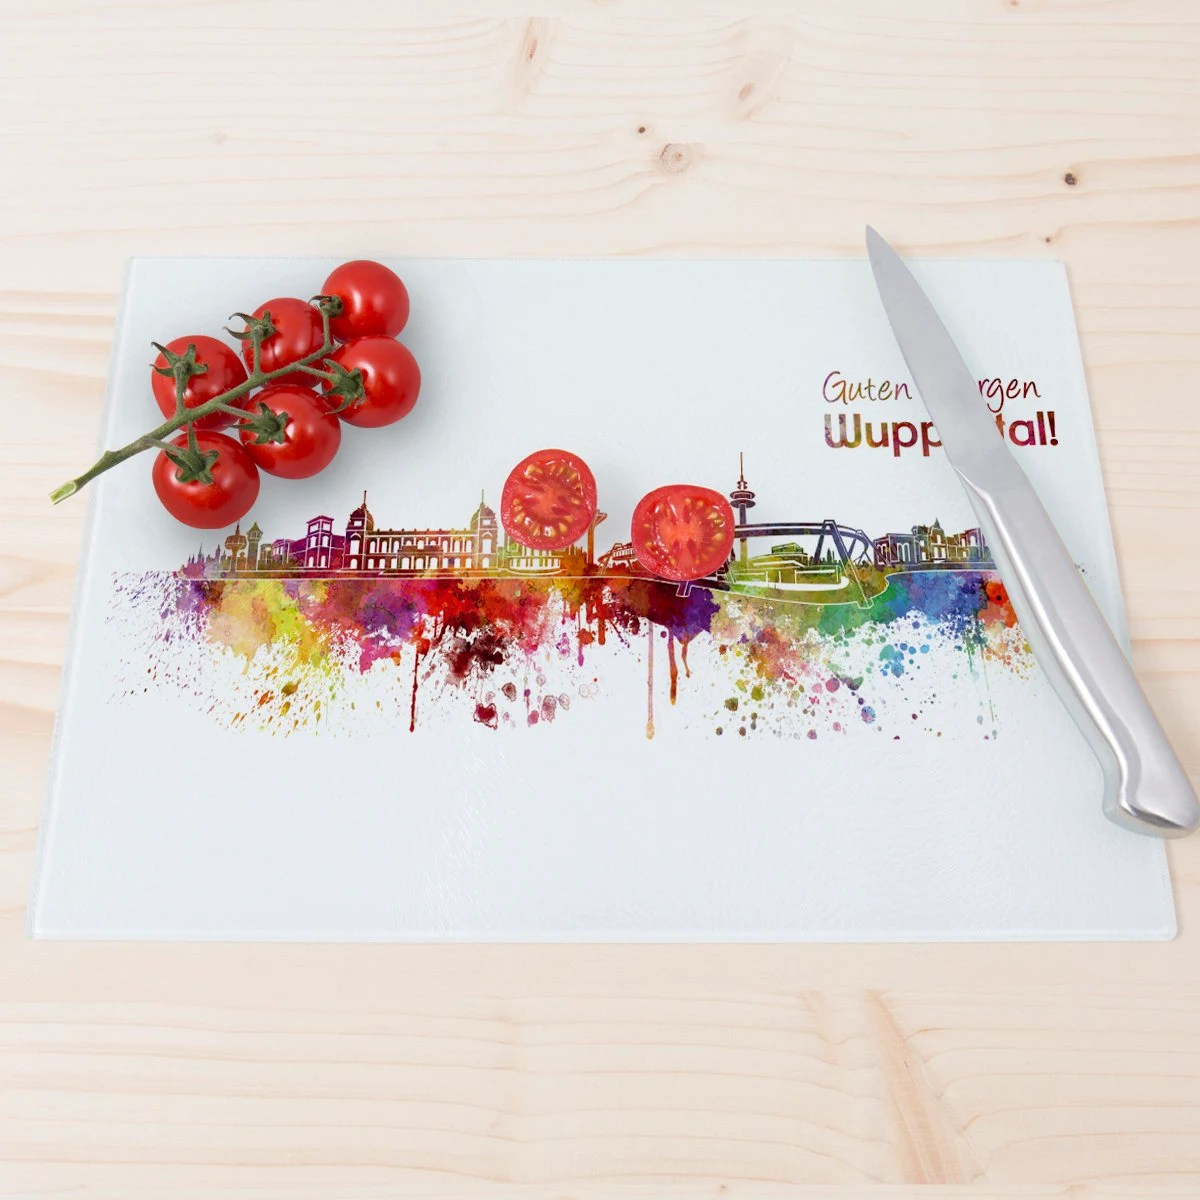 Tomato Wuppertal Wandkings Glass Cutting Board